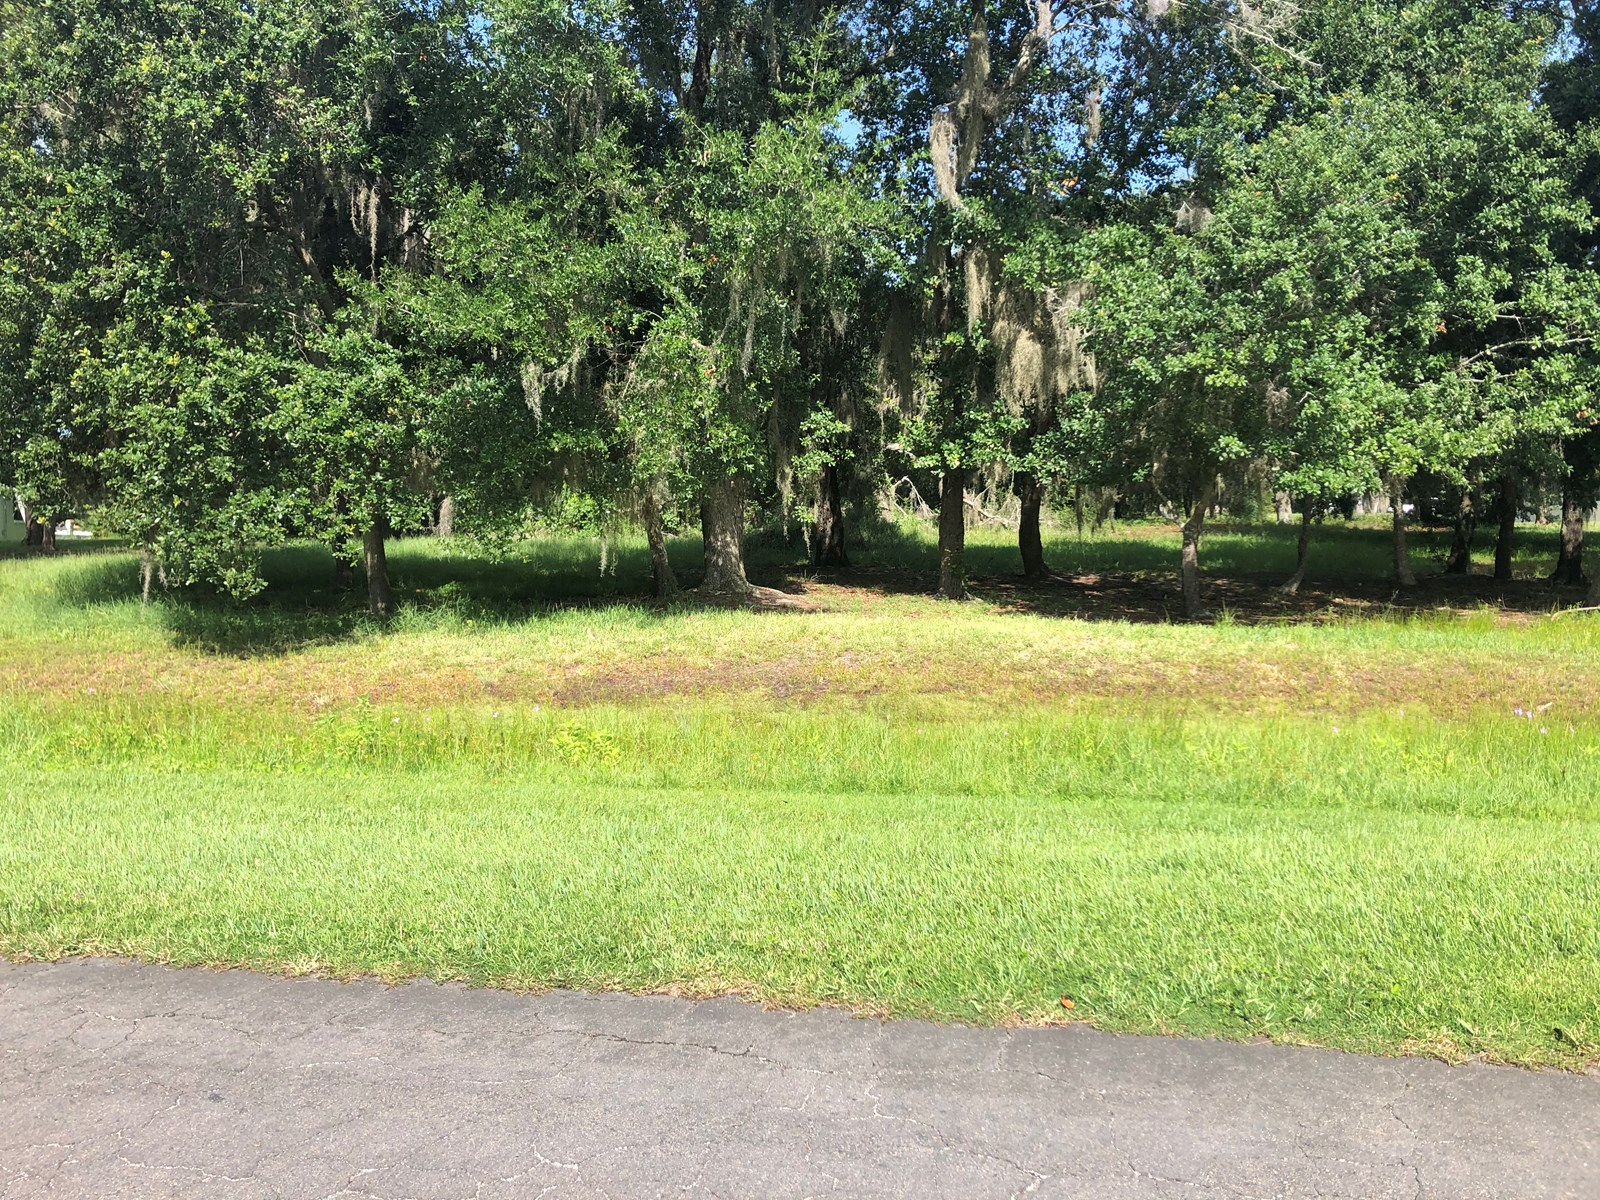 1 ACRE LOT, BUILD YOUR DREAM HOME, CENTRAL FL COMMUNITY